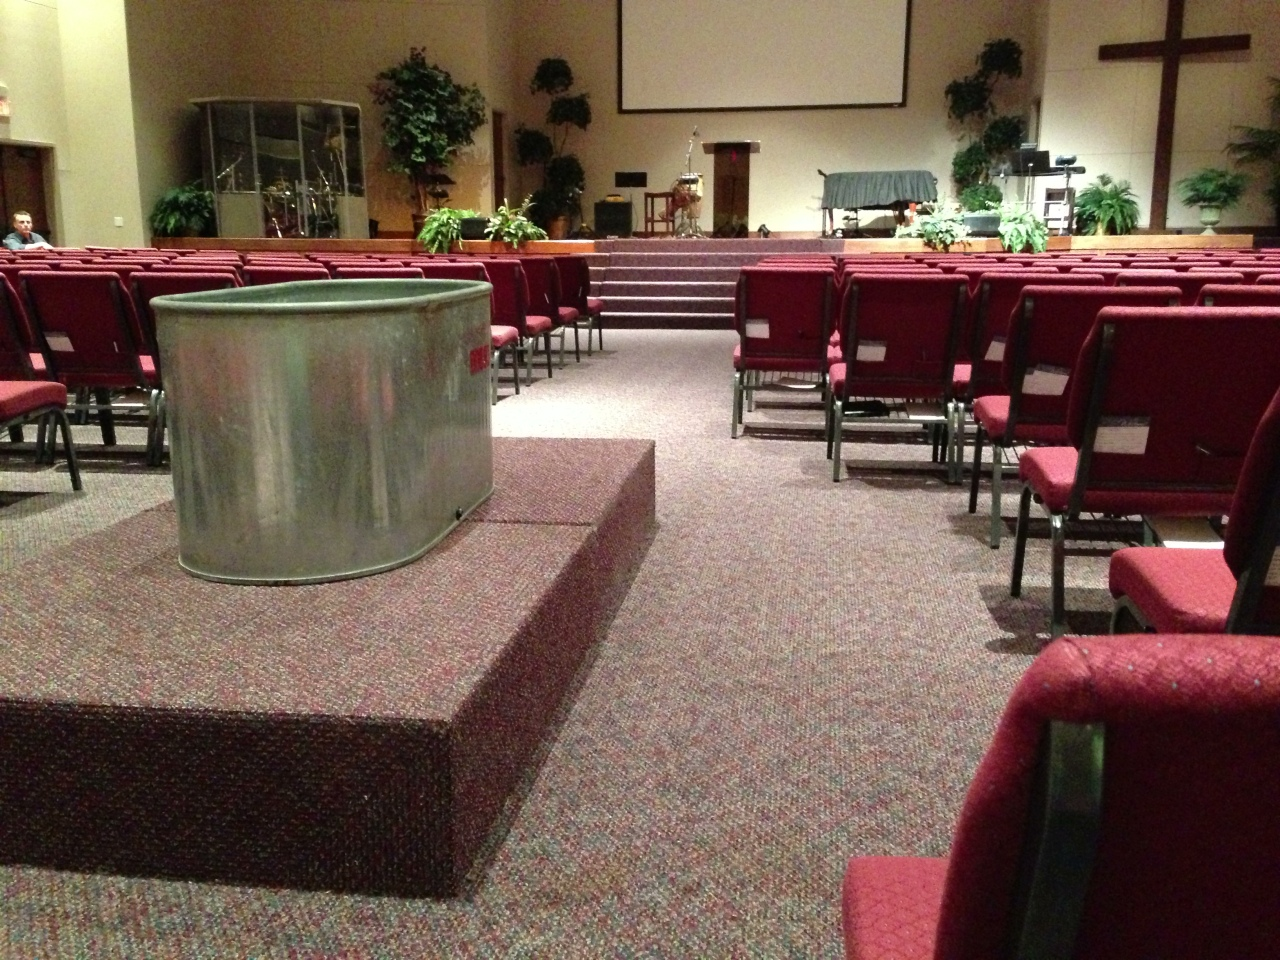 Had to rearrange some chairs in the worship center for this Sunday's sermon out of Jeremiah 2:9-13